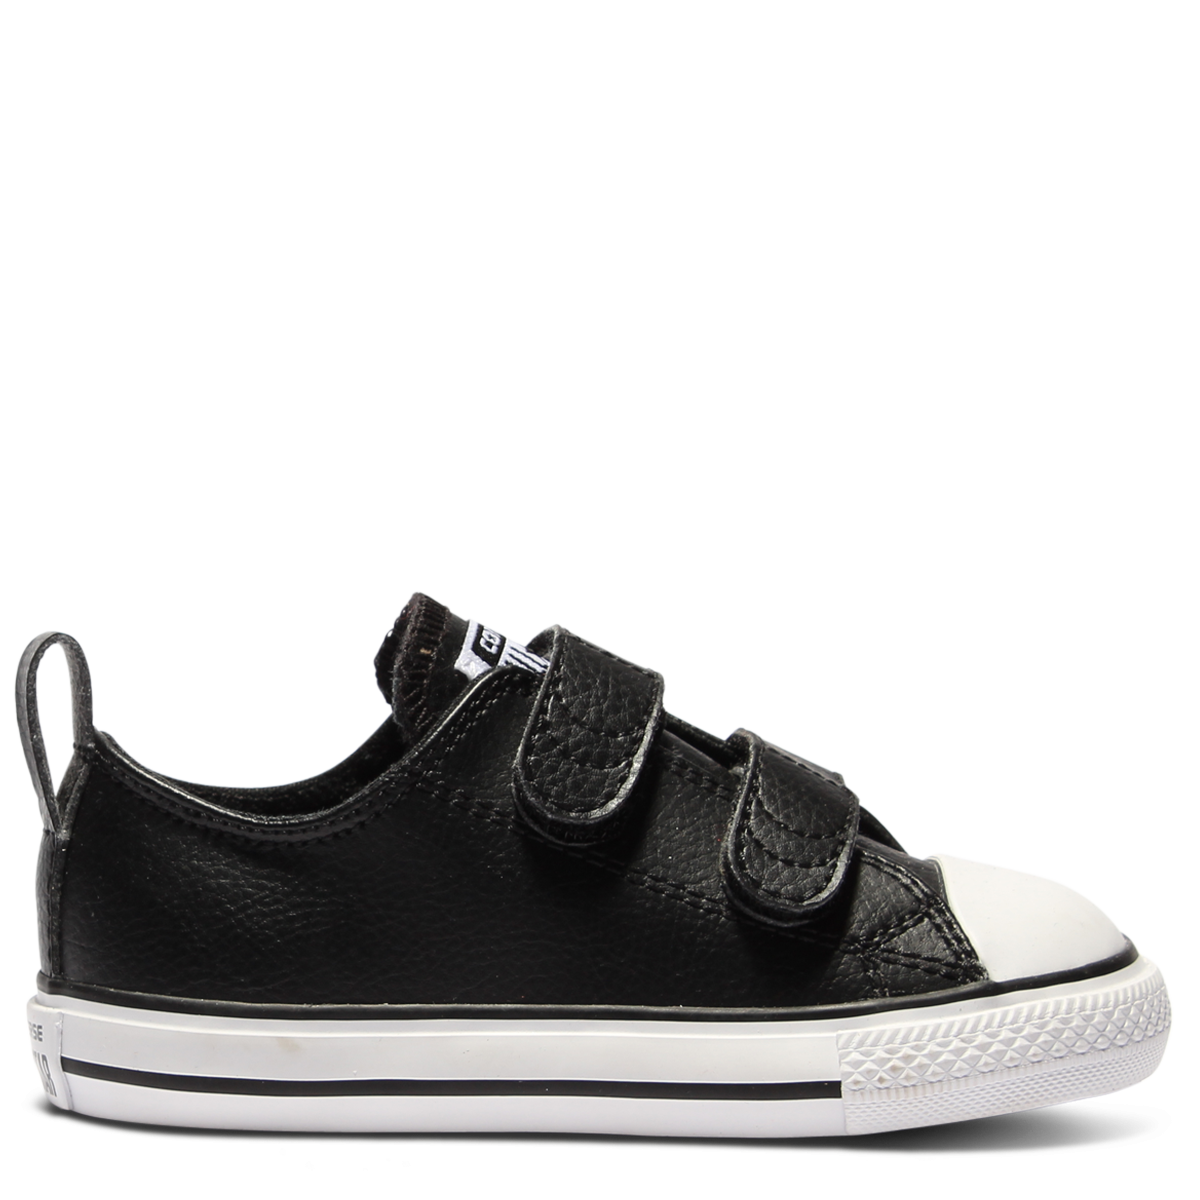 d67368fdcc77 Buy Chuck Taylor All Star 2V Leather Toddler Low Top Black Online ...